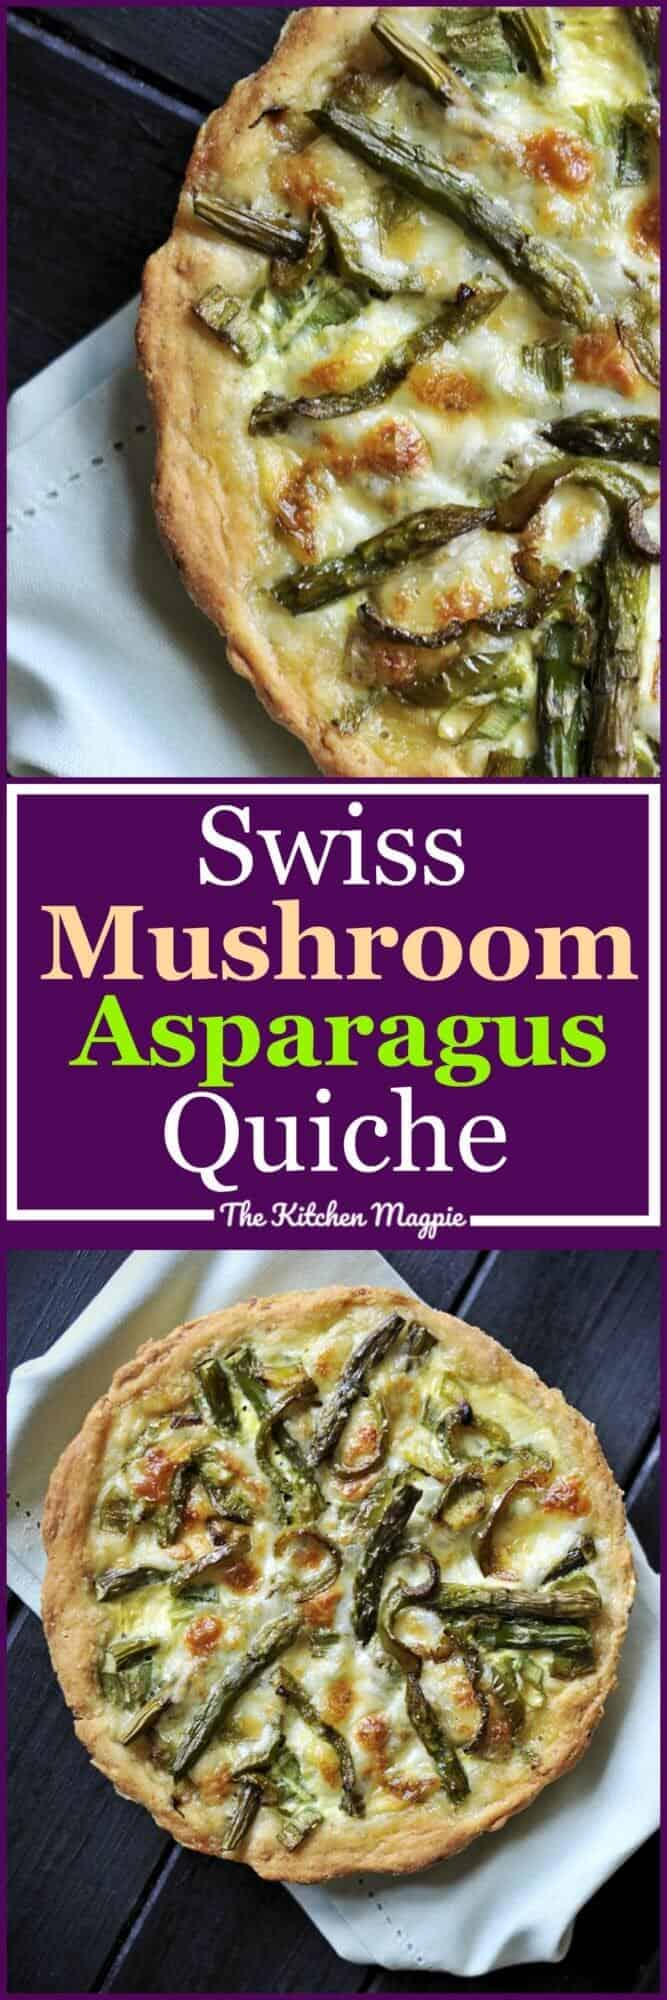 Delicious home made Swiss Mushroom Asparagus Quiche for brunch is always a good idea! #breakfast #quiche #mushroom #asparagus #eggs #brunch #recipe